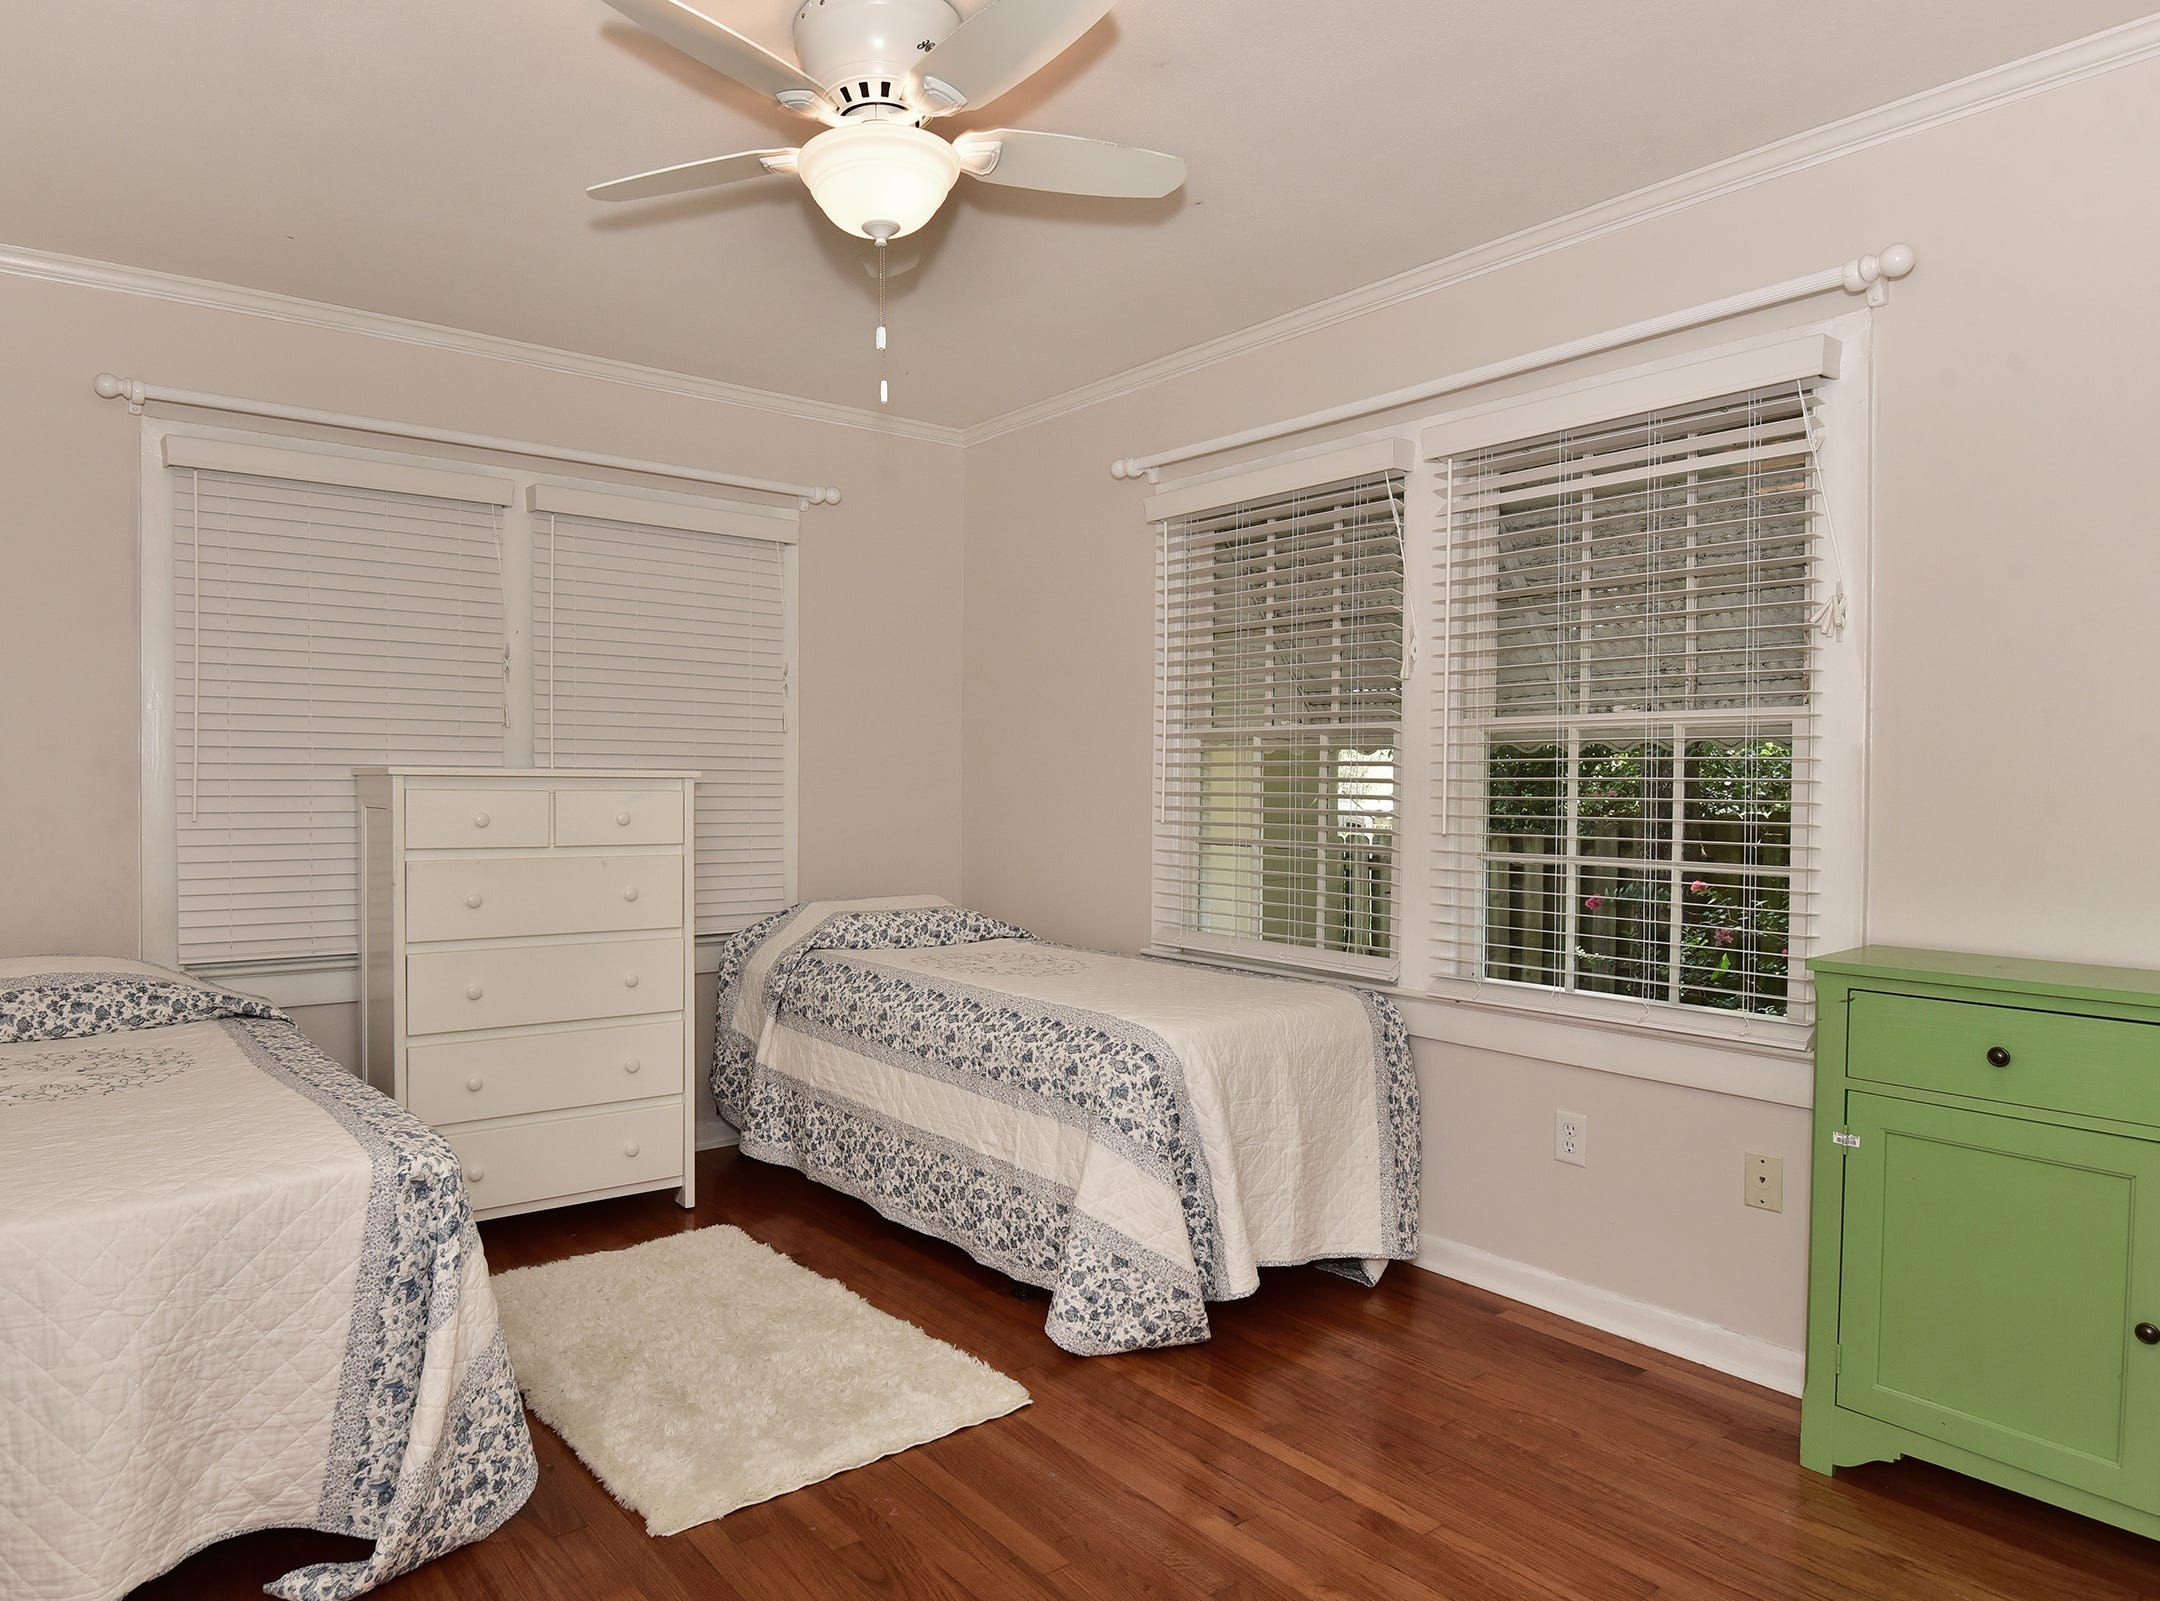 1812 Magnolia Avenue, an additional bedroom.